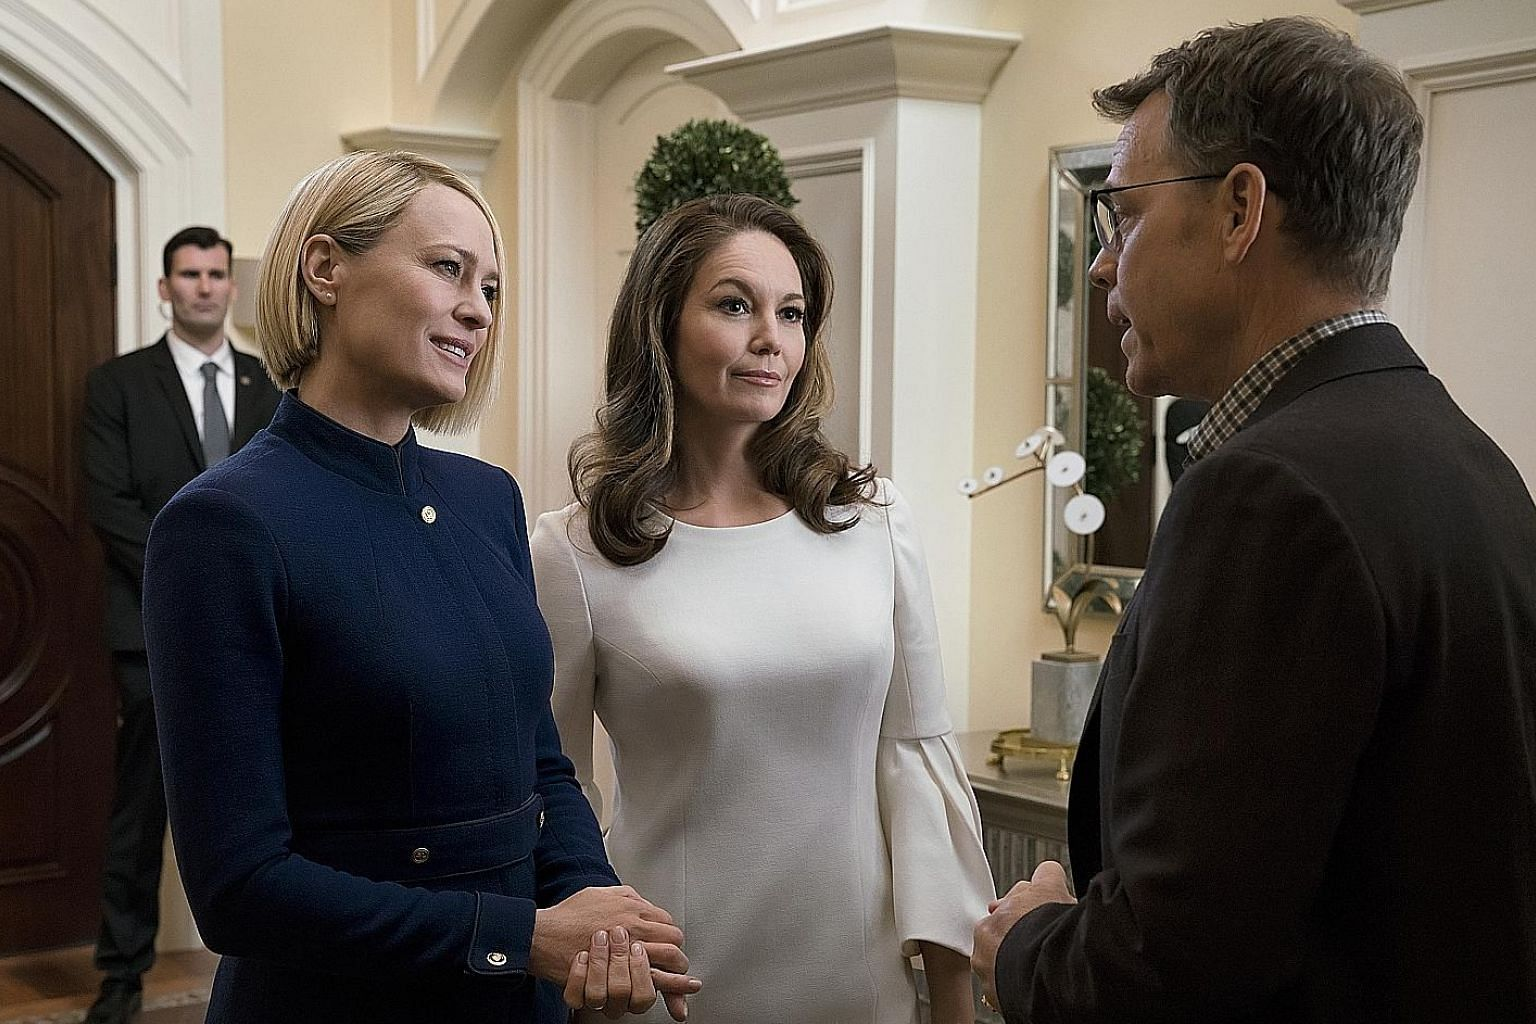 (From far left) Robin Wright, Diane Lane and Greg Kinnear in House Of Cards. (Above) Patricia Arquette in Escape At Dannemora.